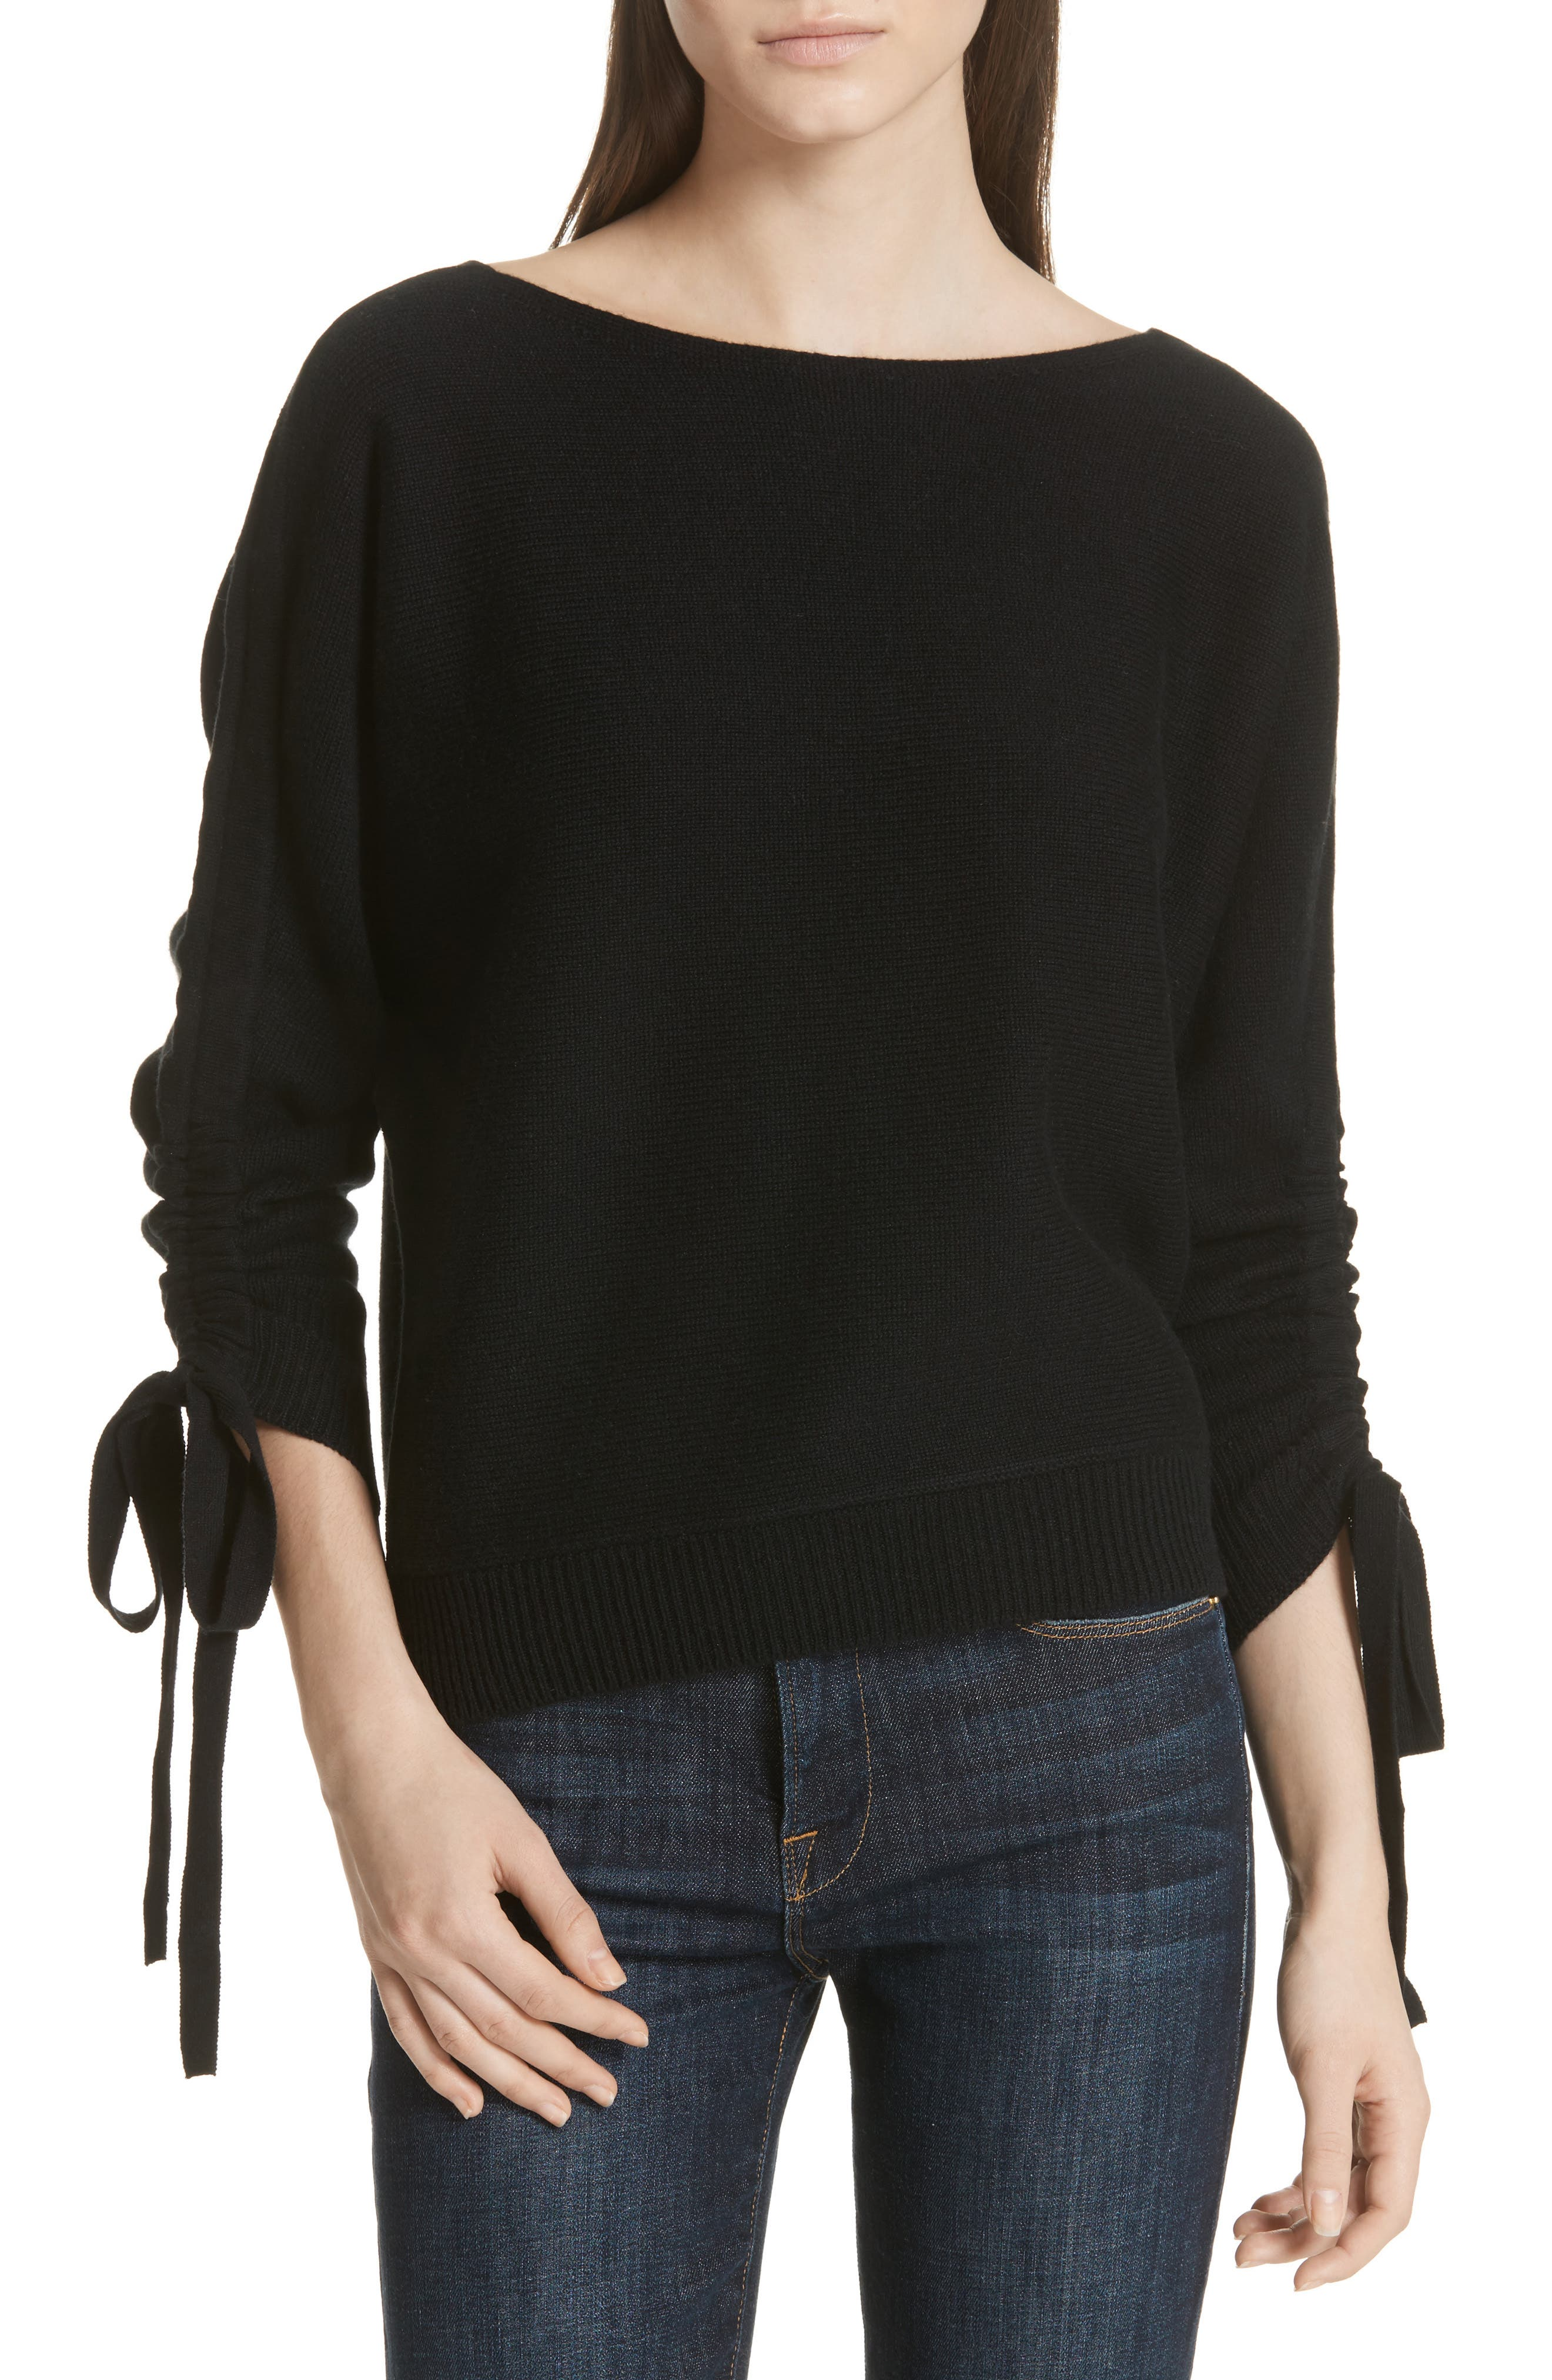 Dannee Wool & Cashmere Sweater,                             Main thumbnail 1, color,                             002